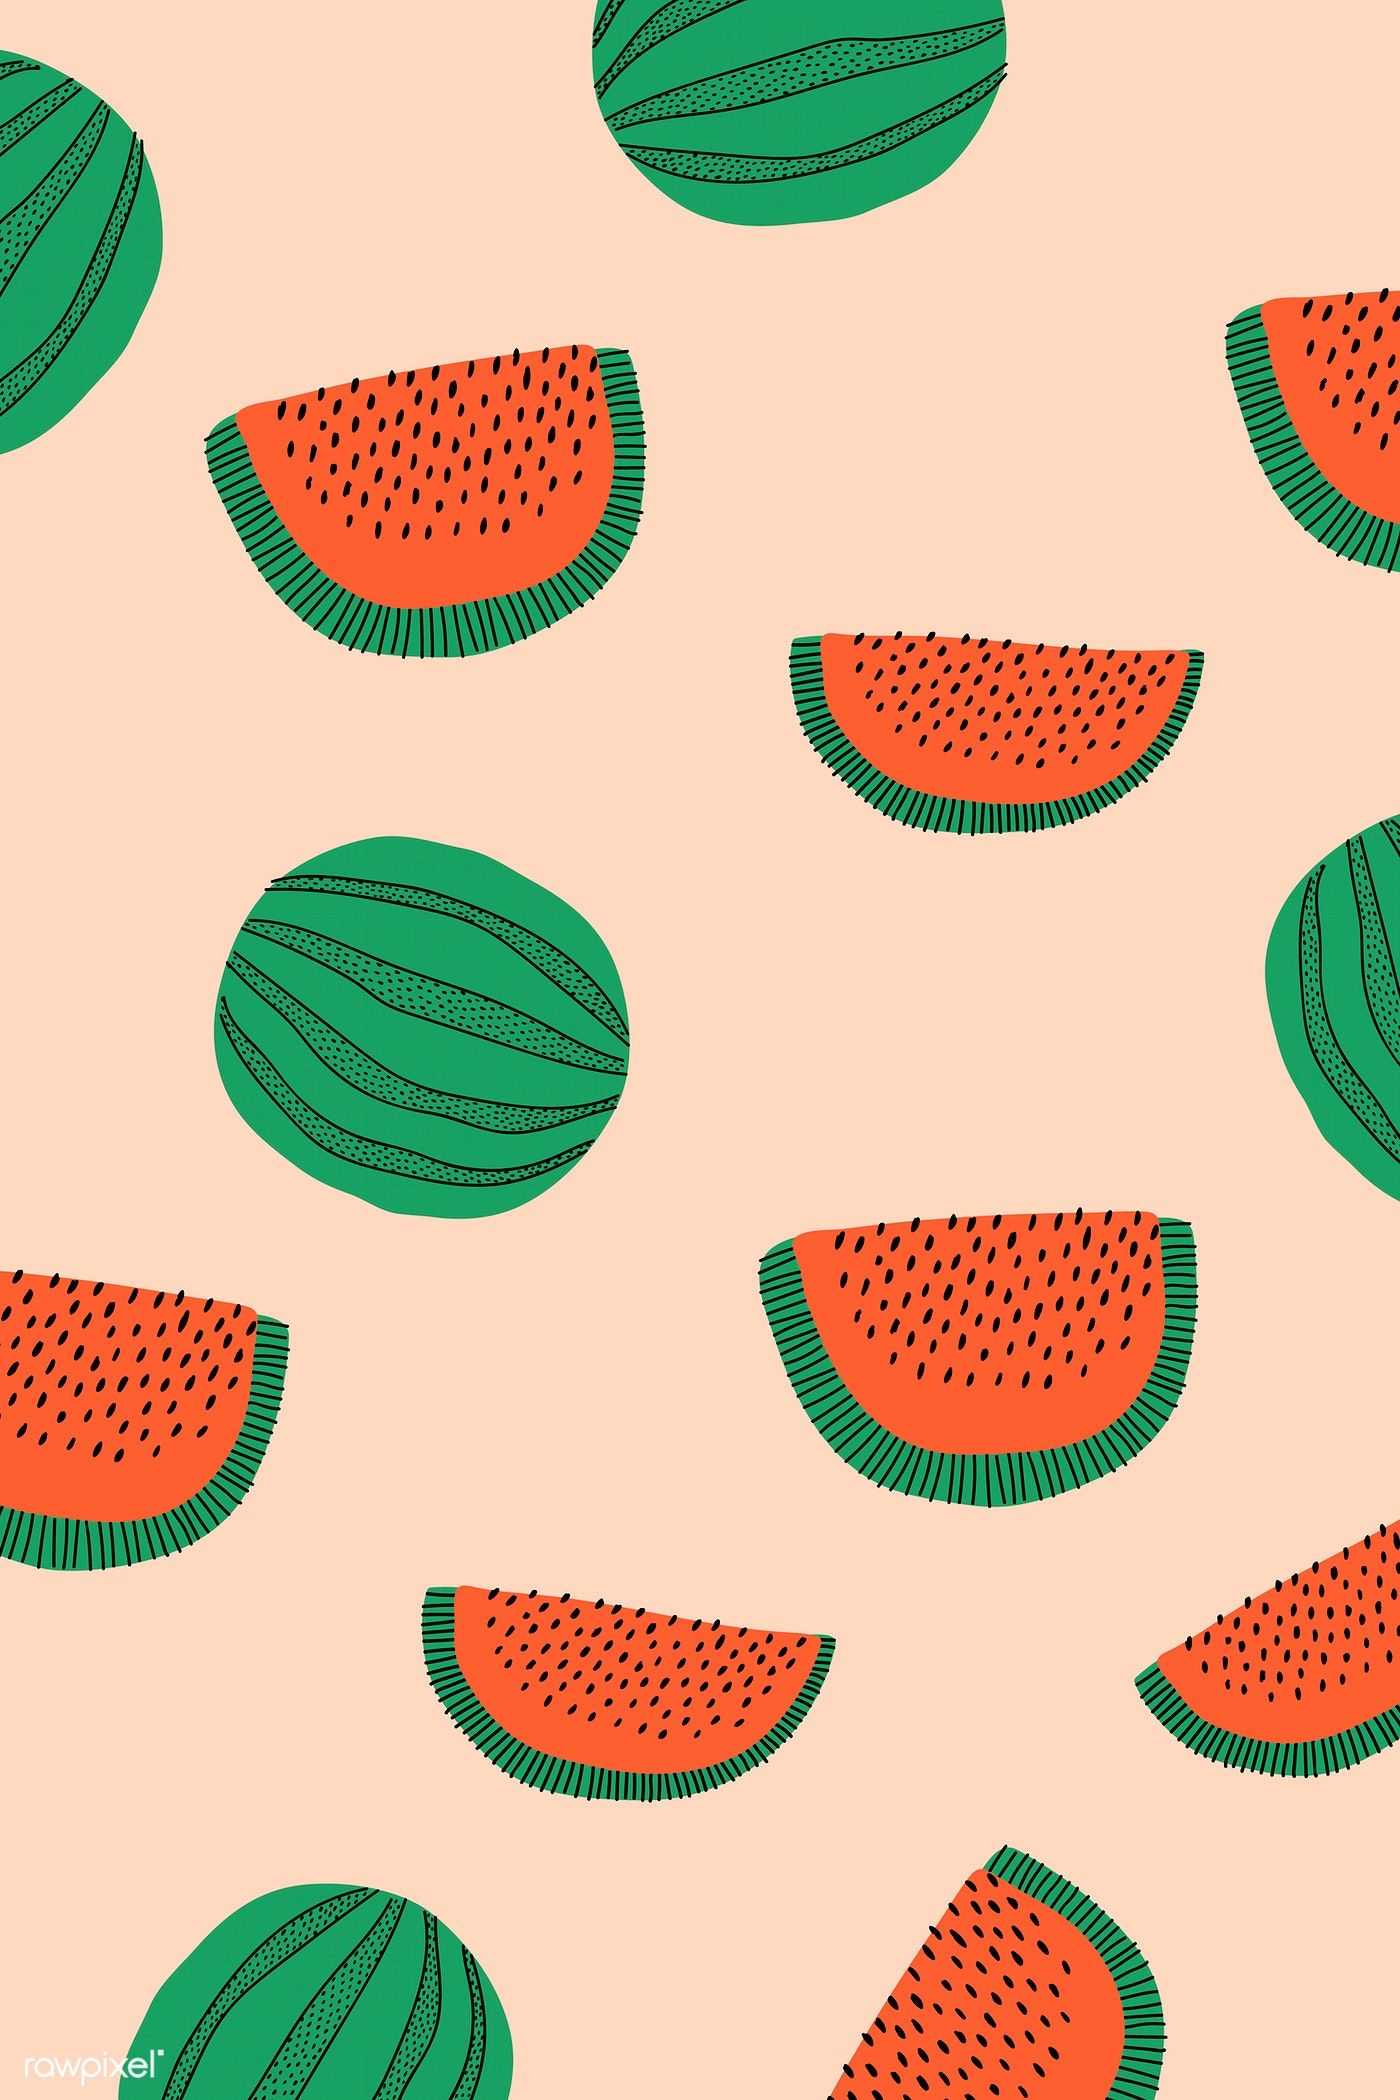 Download premium vector of Watermelon patterned pastel orange background